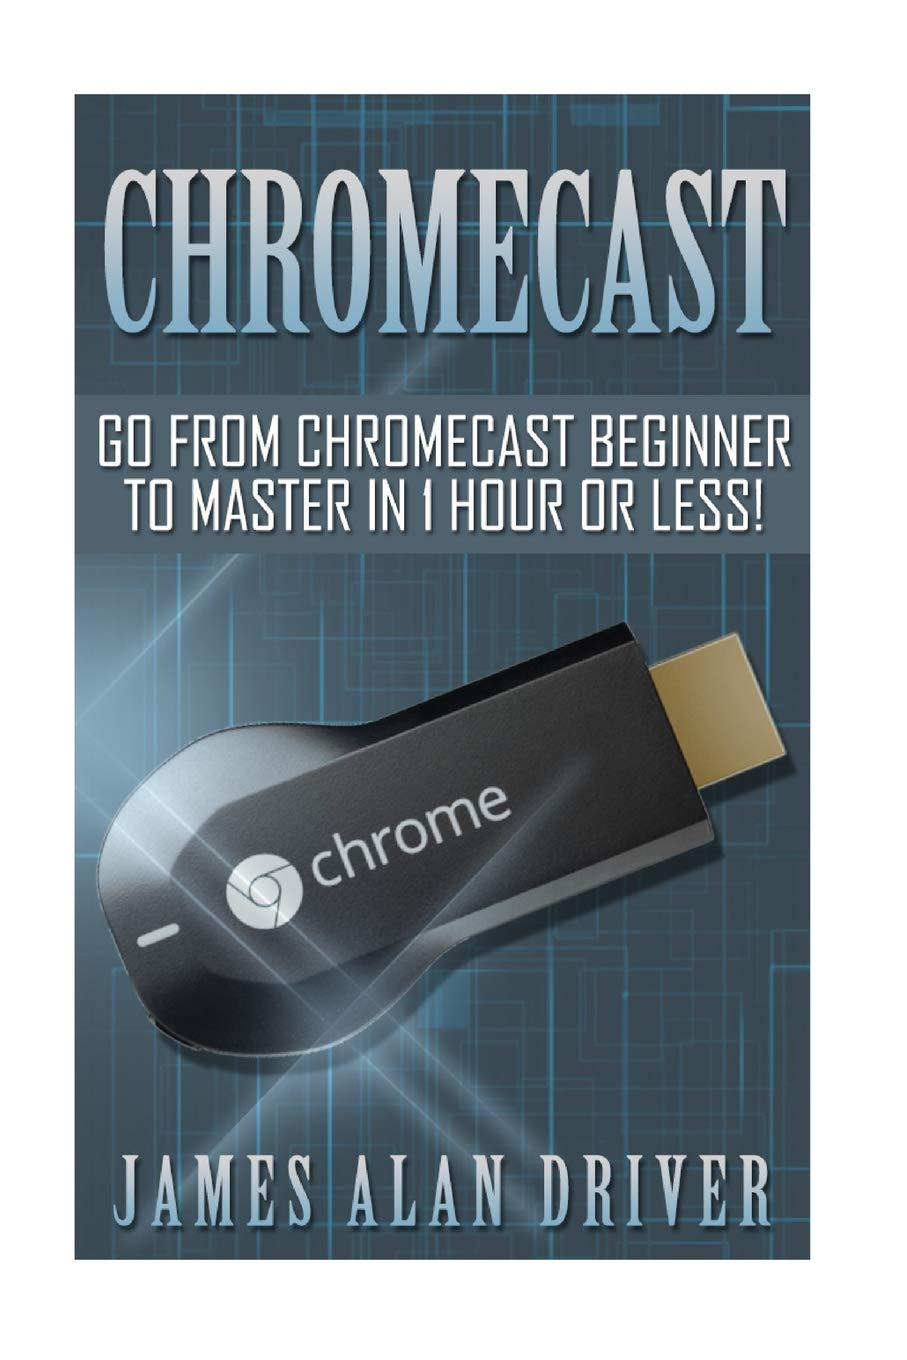 Chromecast  Go From Chromecast Beginner To Master In 1 Hour Or Less   Master Your Chromecast Device Quickly And Easily